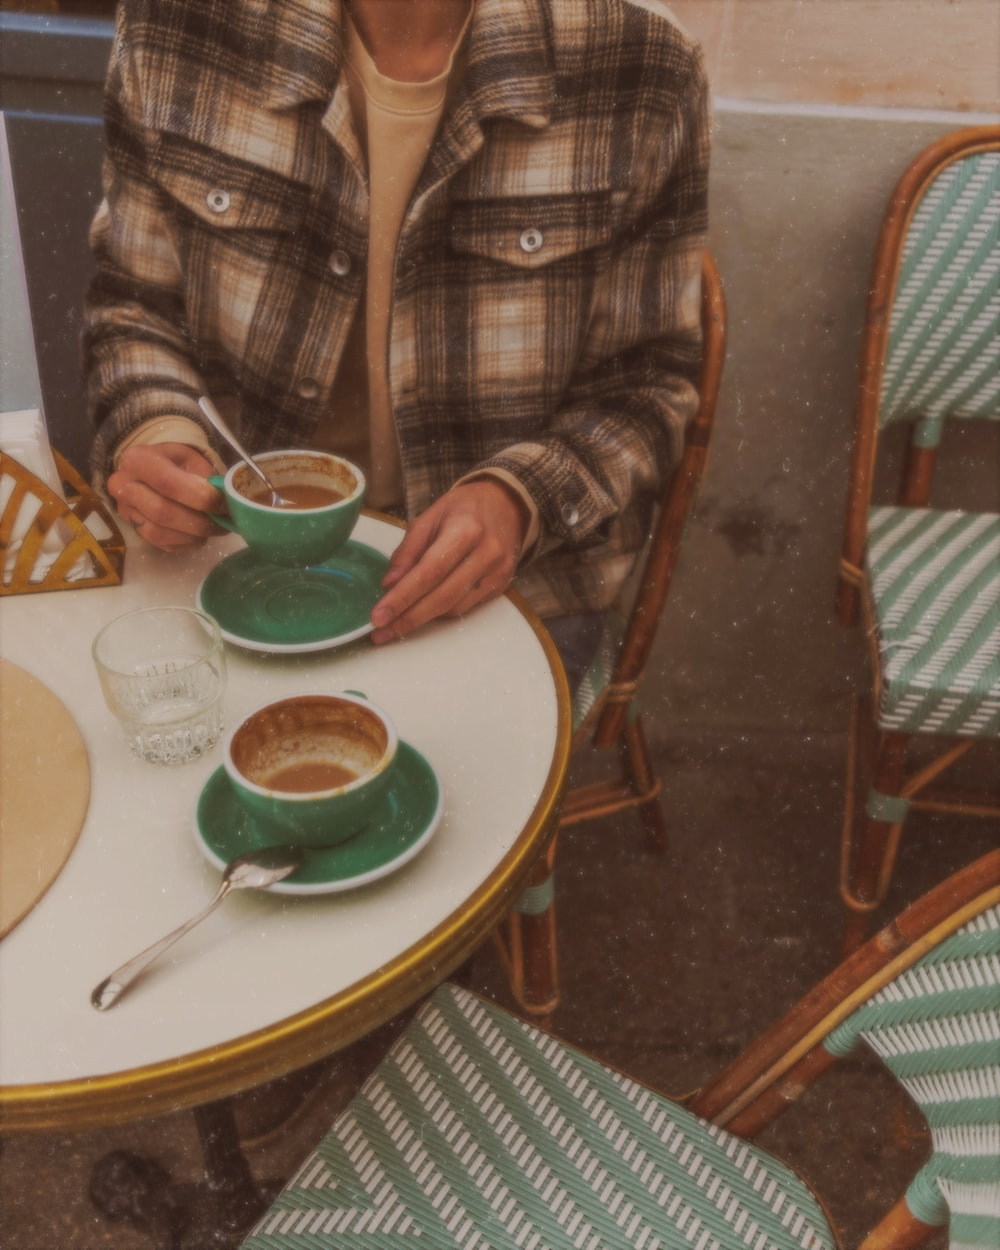 brown and black plaid long-sleeved shirt sitting by the table holding teacup